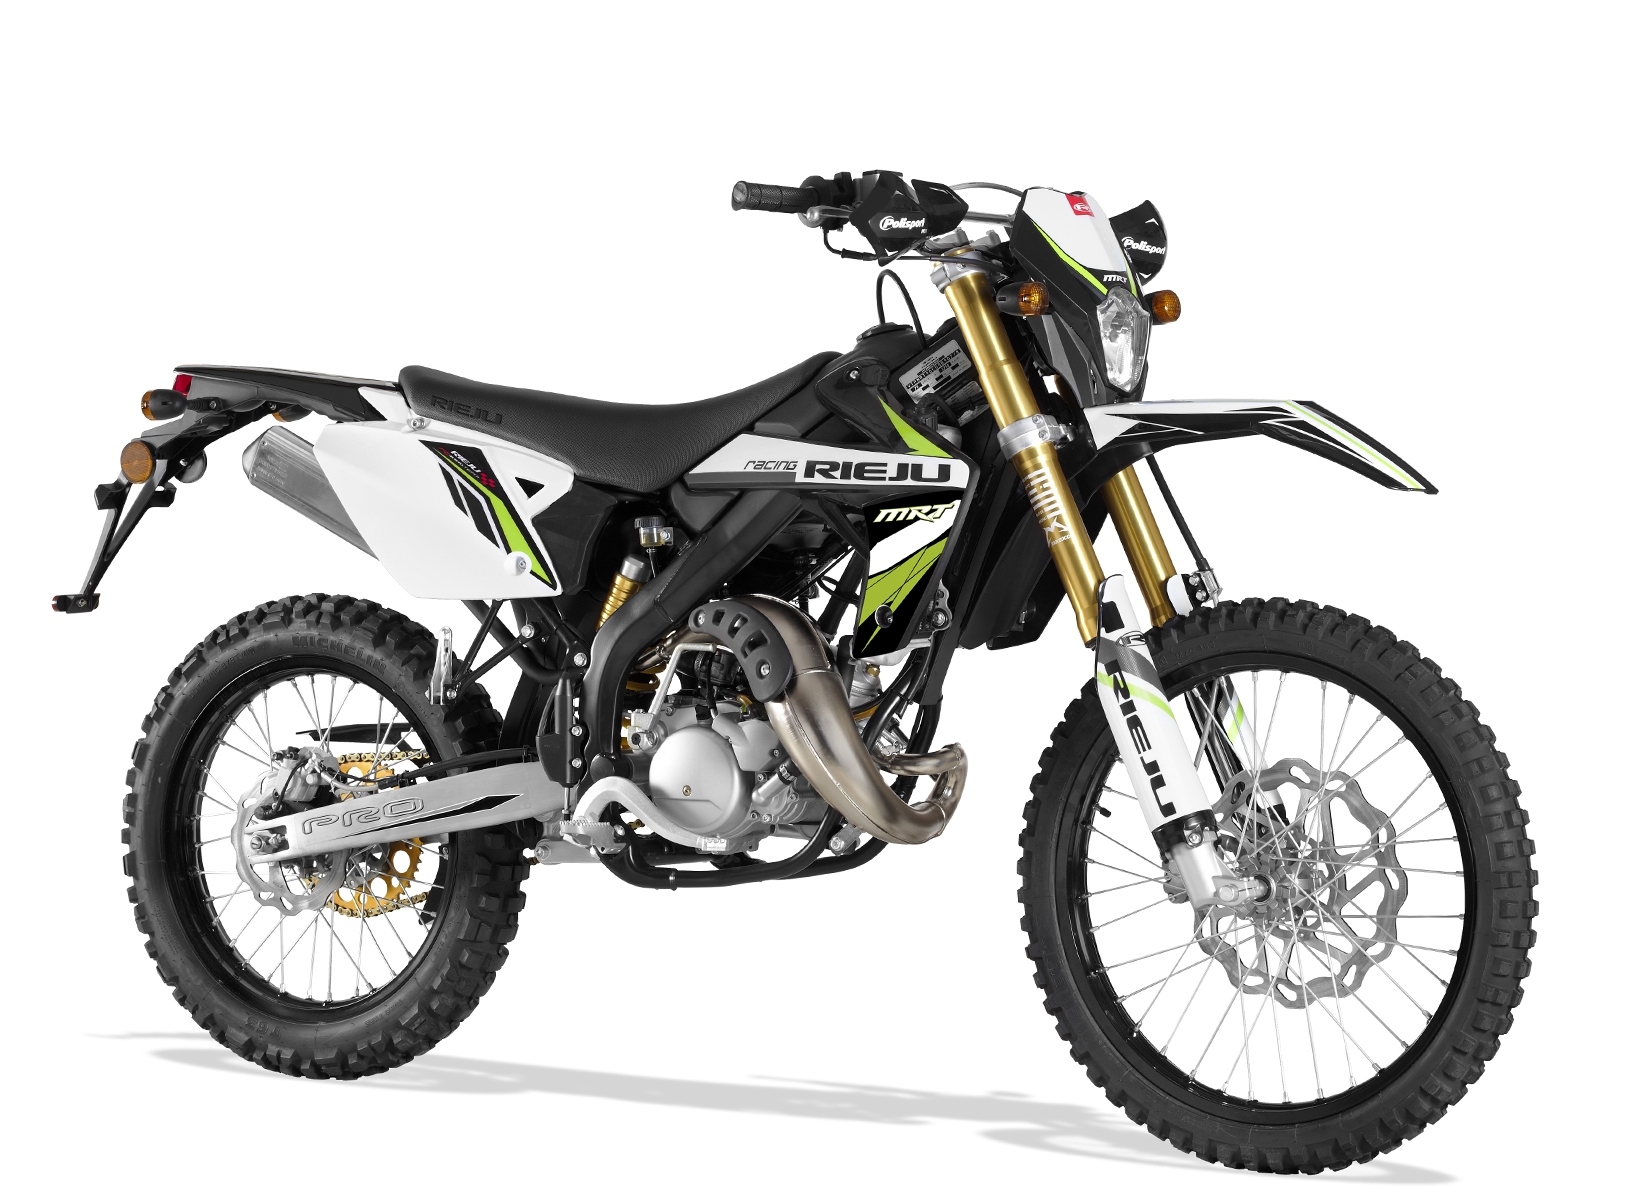 2013 Rieju Mrt 50 Pro The Diminutive Motocross Machine